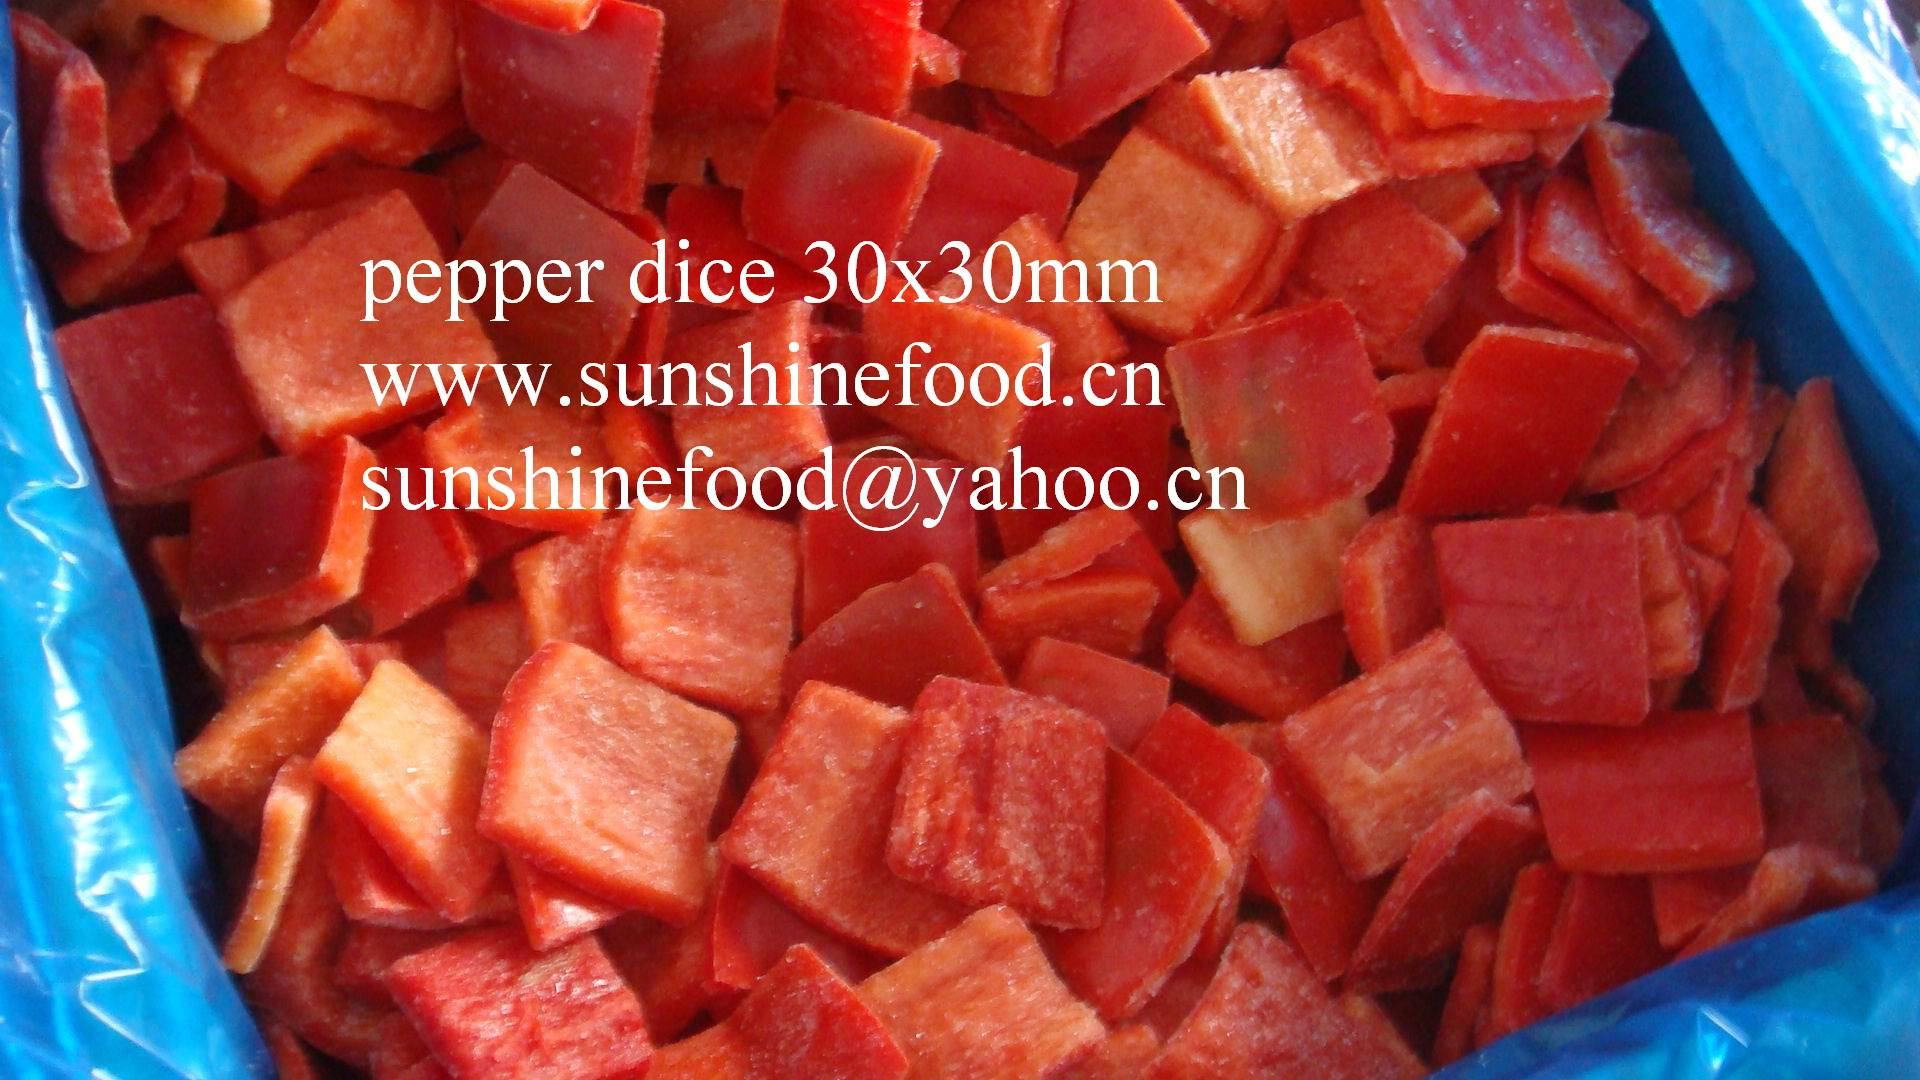 IQF pepper dice, best price